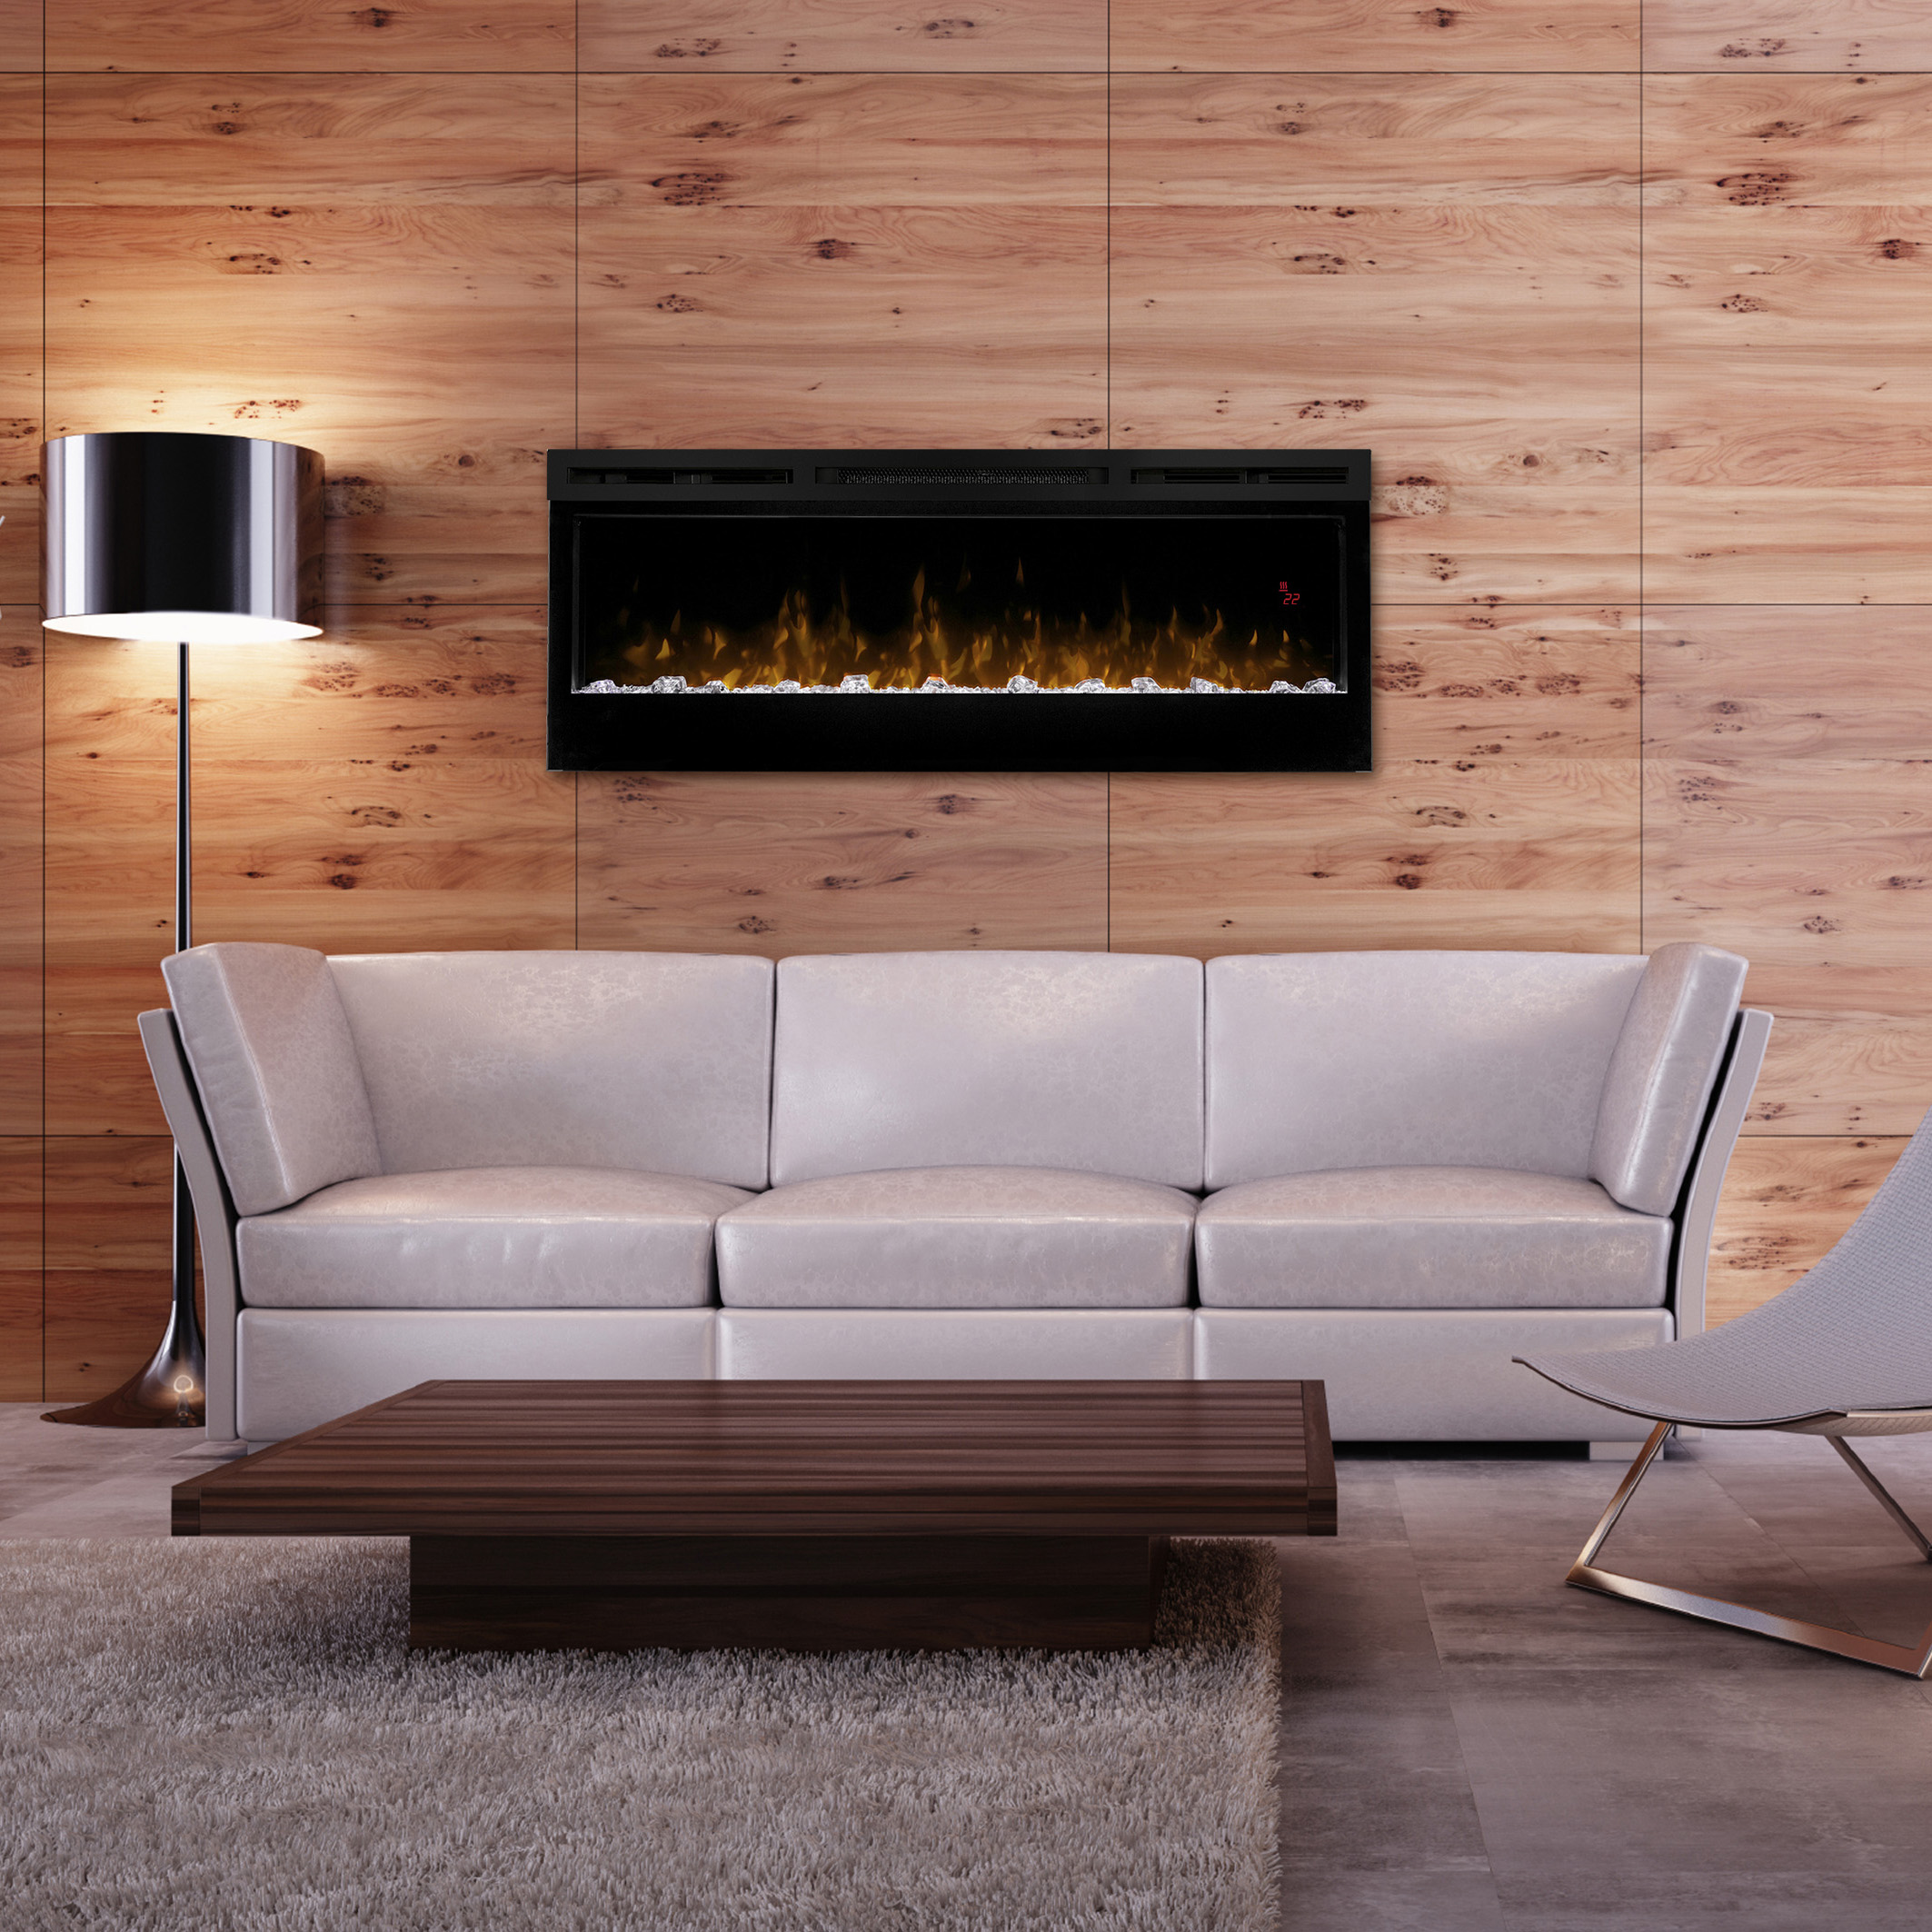 Dimplex 50 inch prism wall mounted fireplace in wooden room